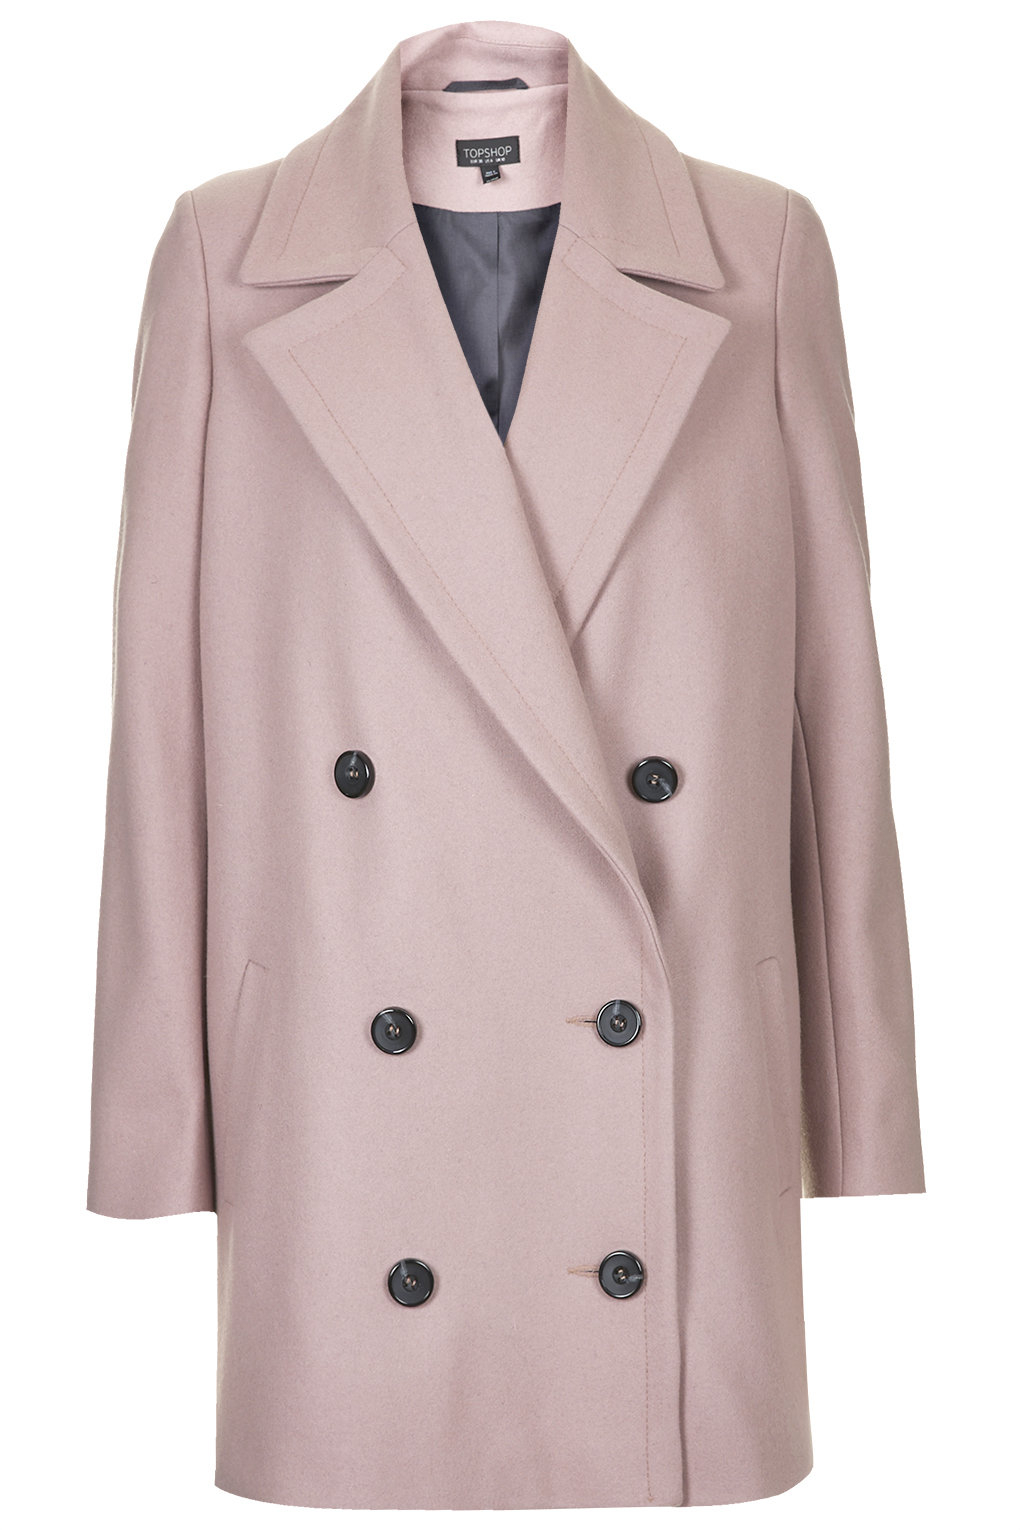 Shop the latest styles of Womens Blue Wool & Wool Blend Coats at Macys. Check out our designer collection of chic coats including peacoats, trench coats, puffer coats and more!